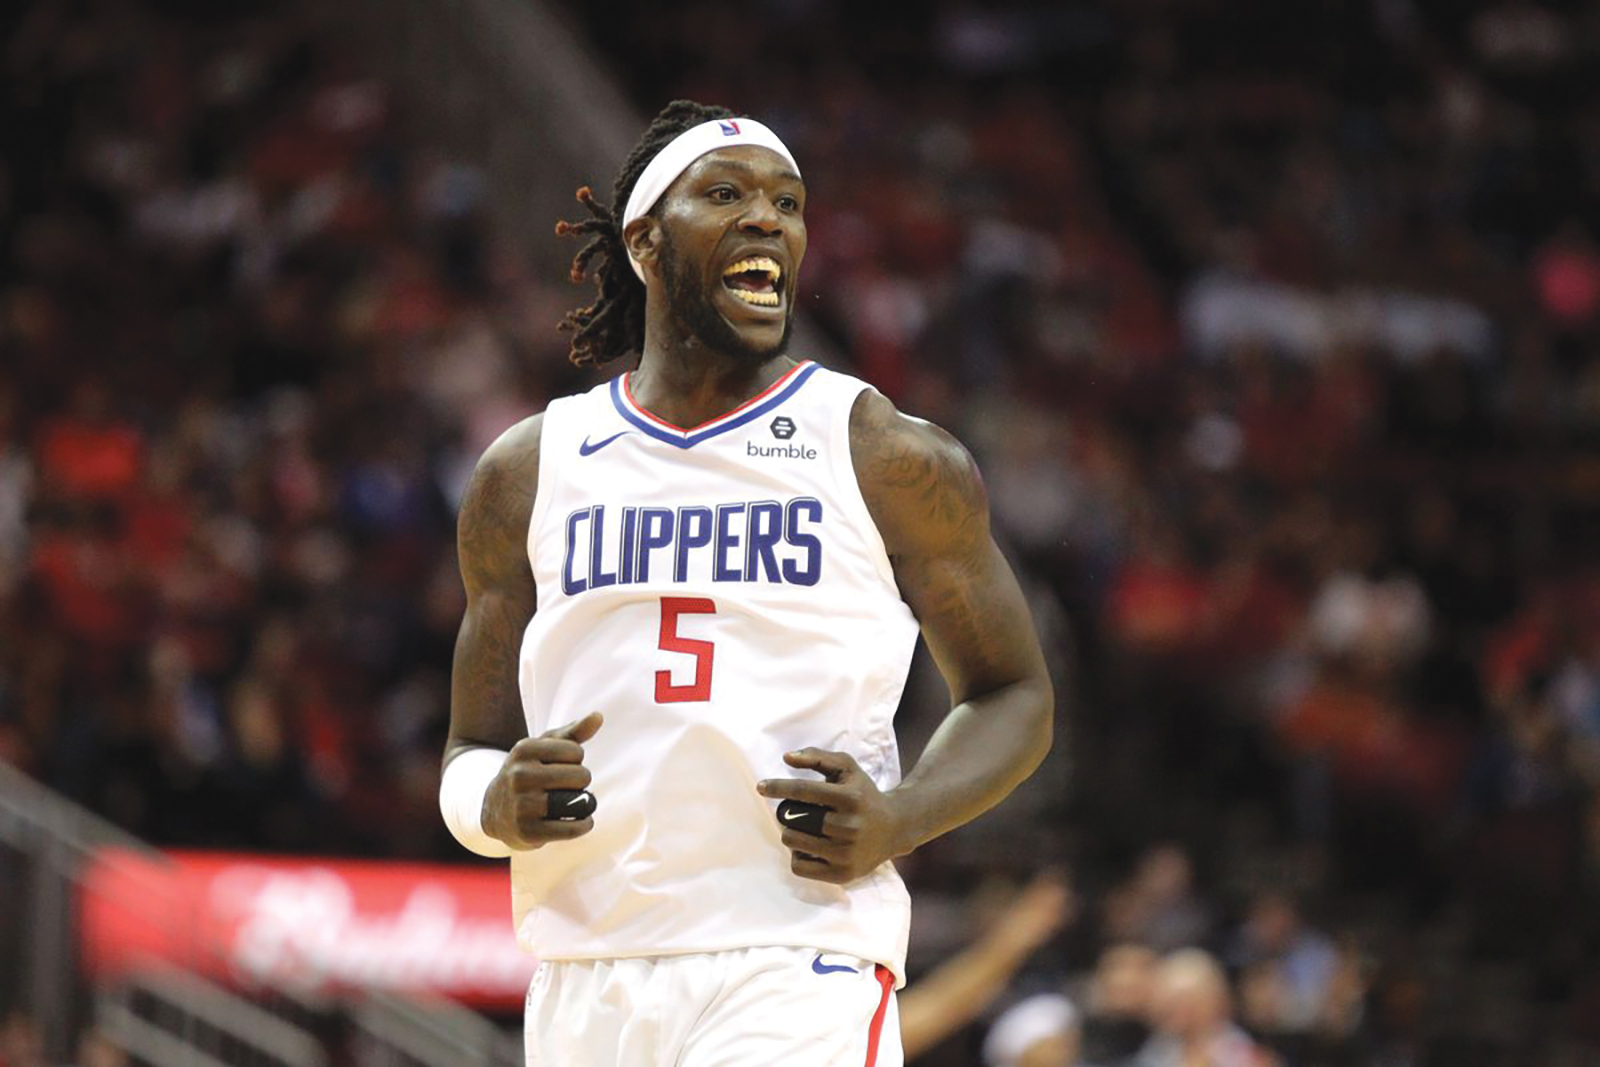 Los Angeles Clippers appreciate Montrezl Harrell both on and off the court (courtesy photo)